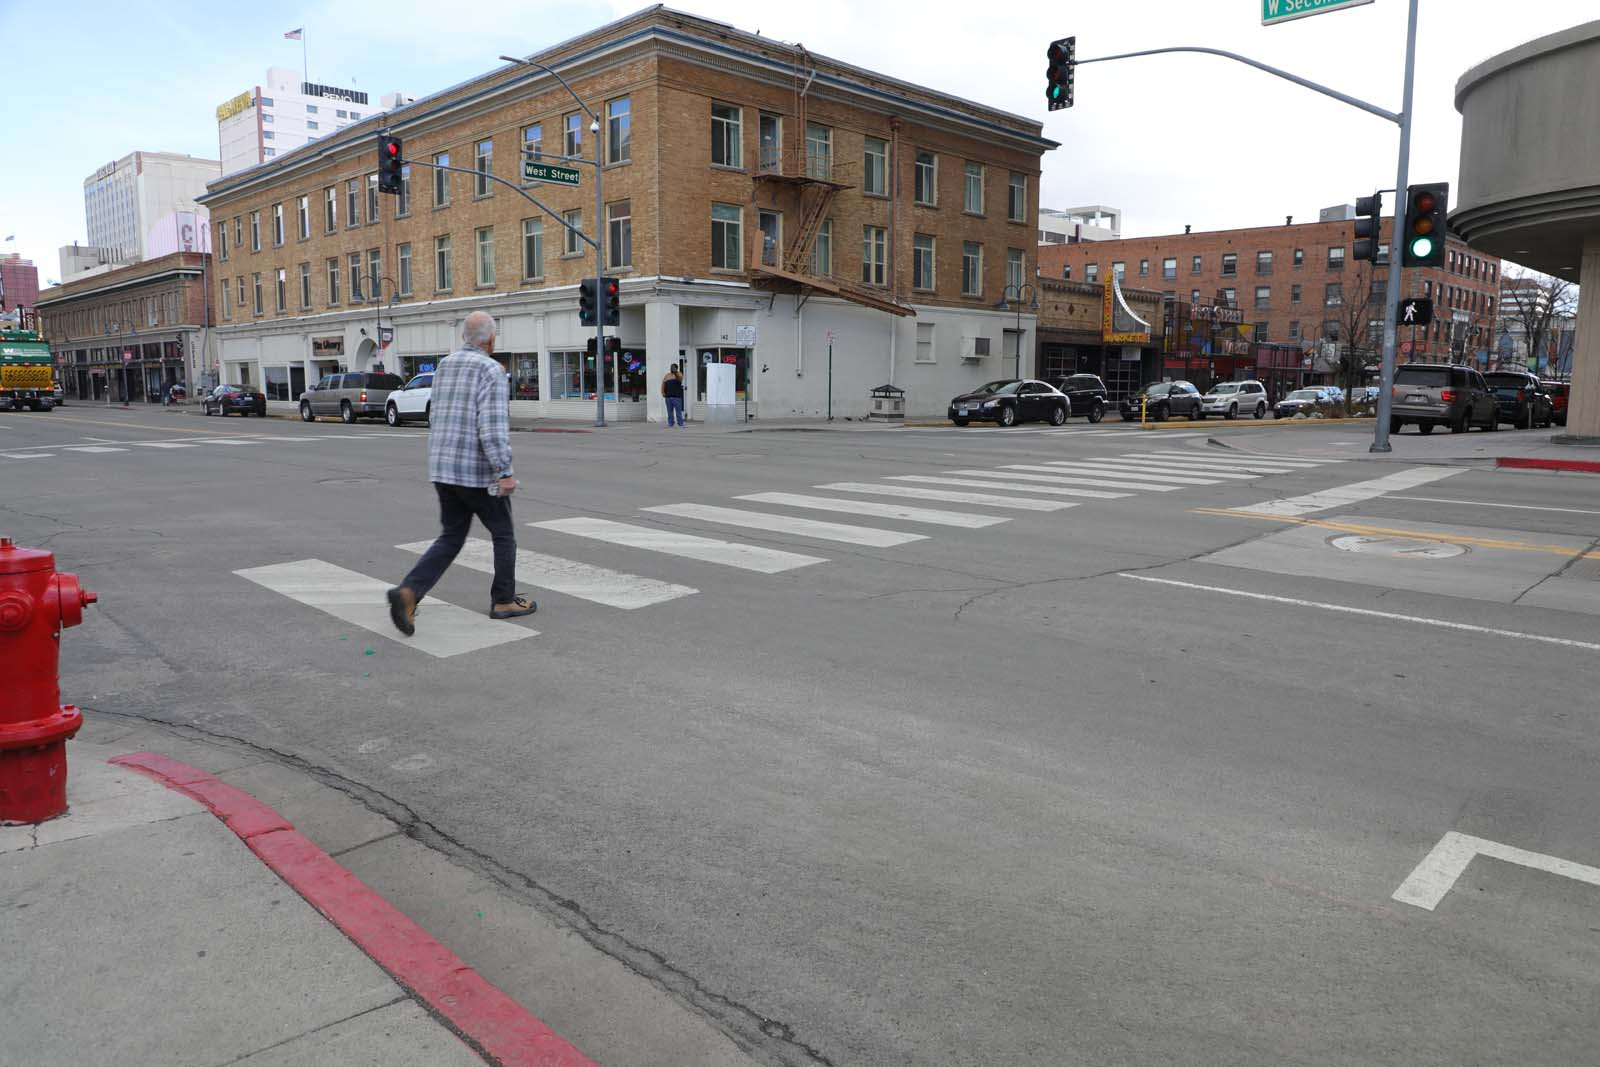 A crosswalk along Second Street in Reno